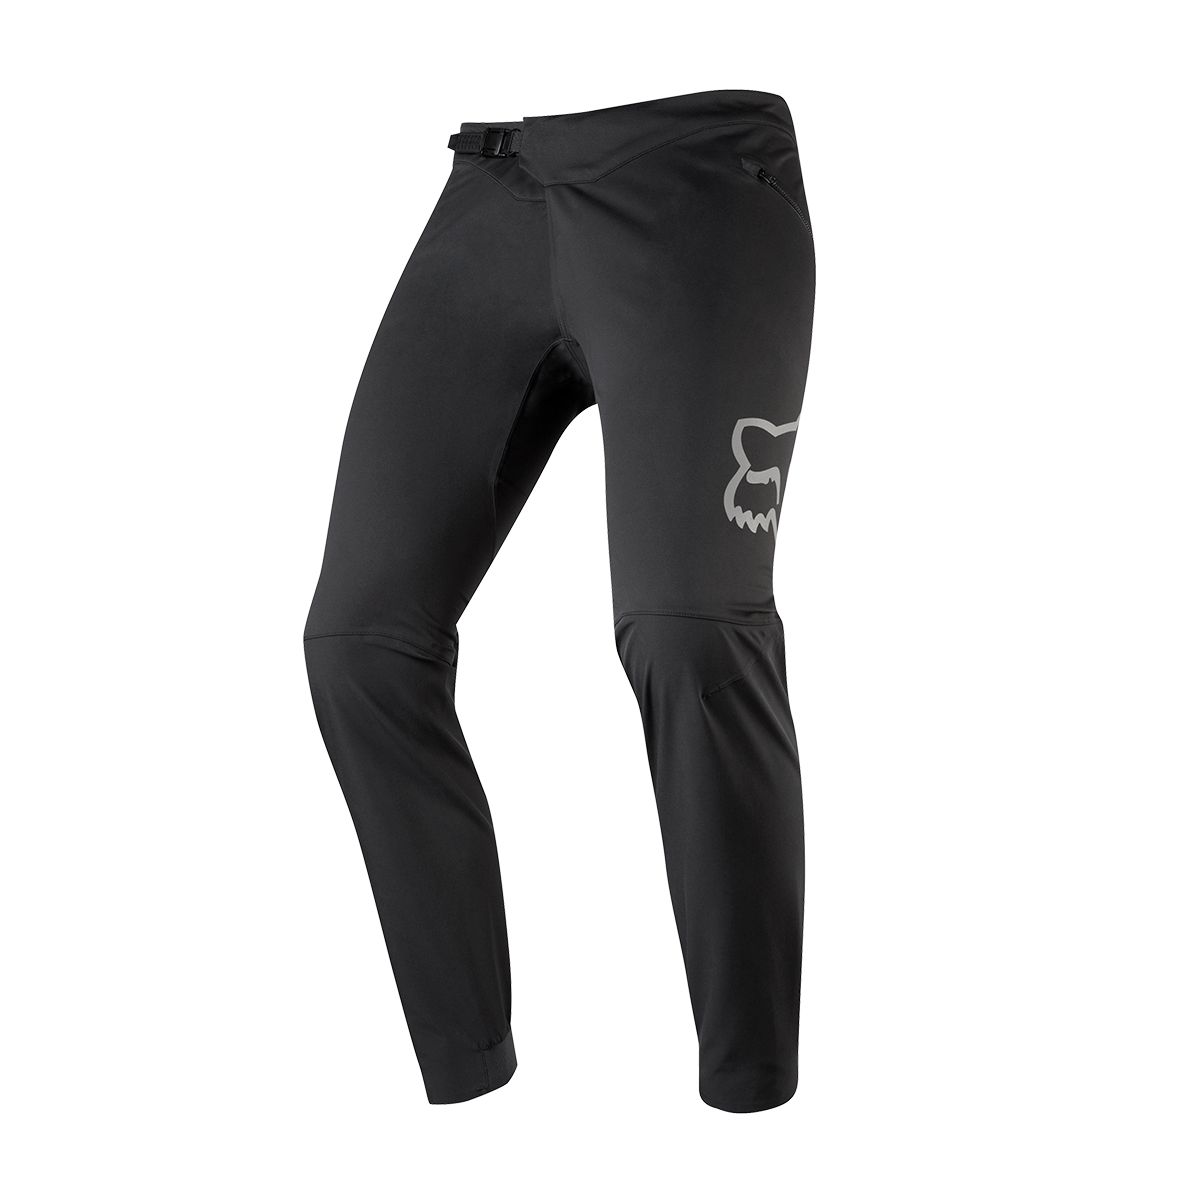 ATTACK WATER PANT for men